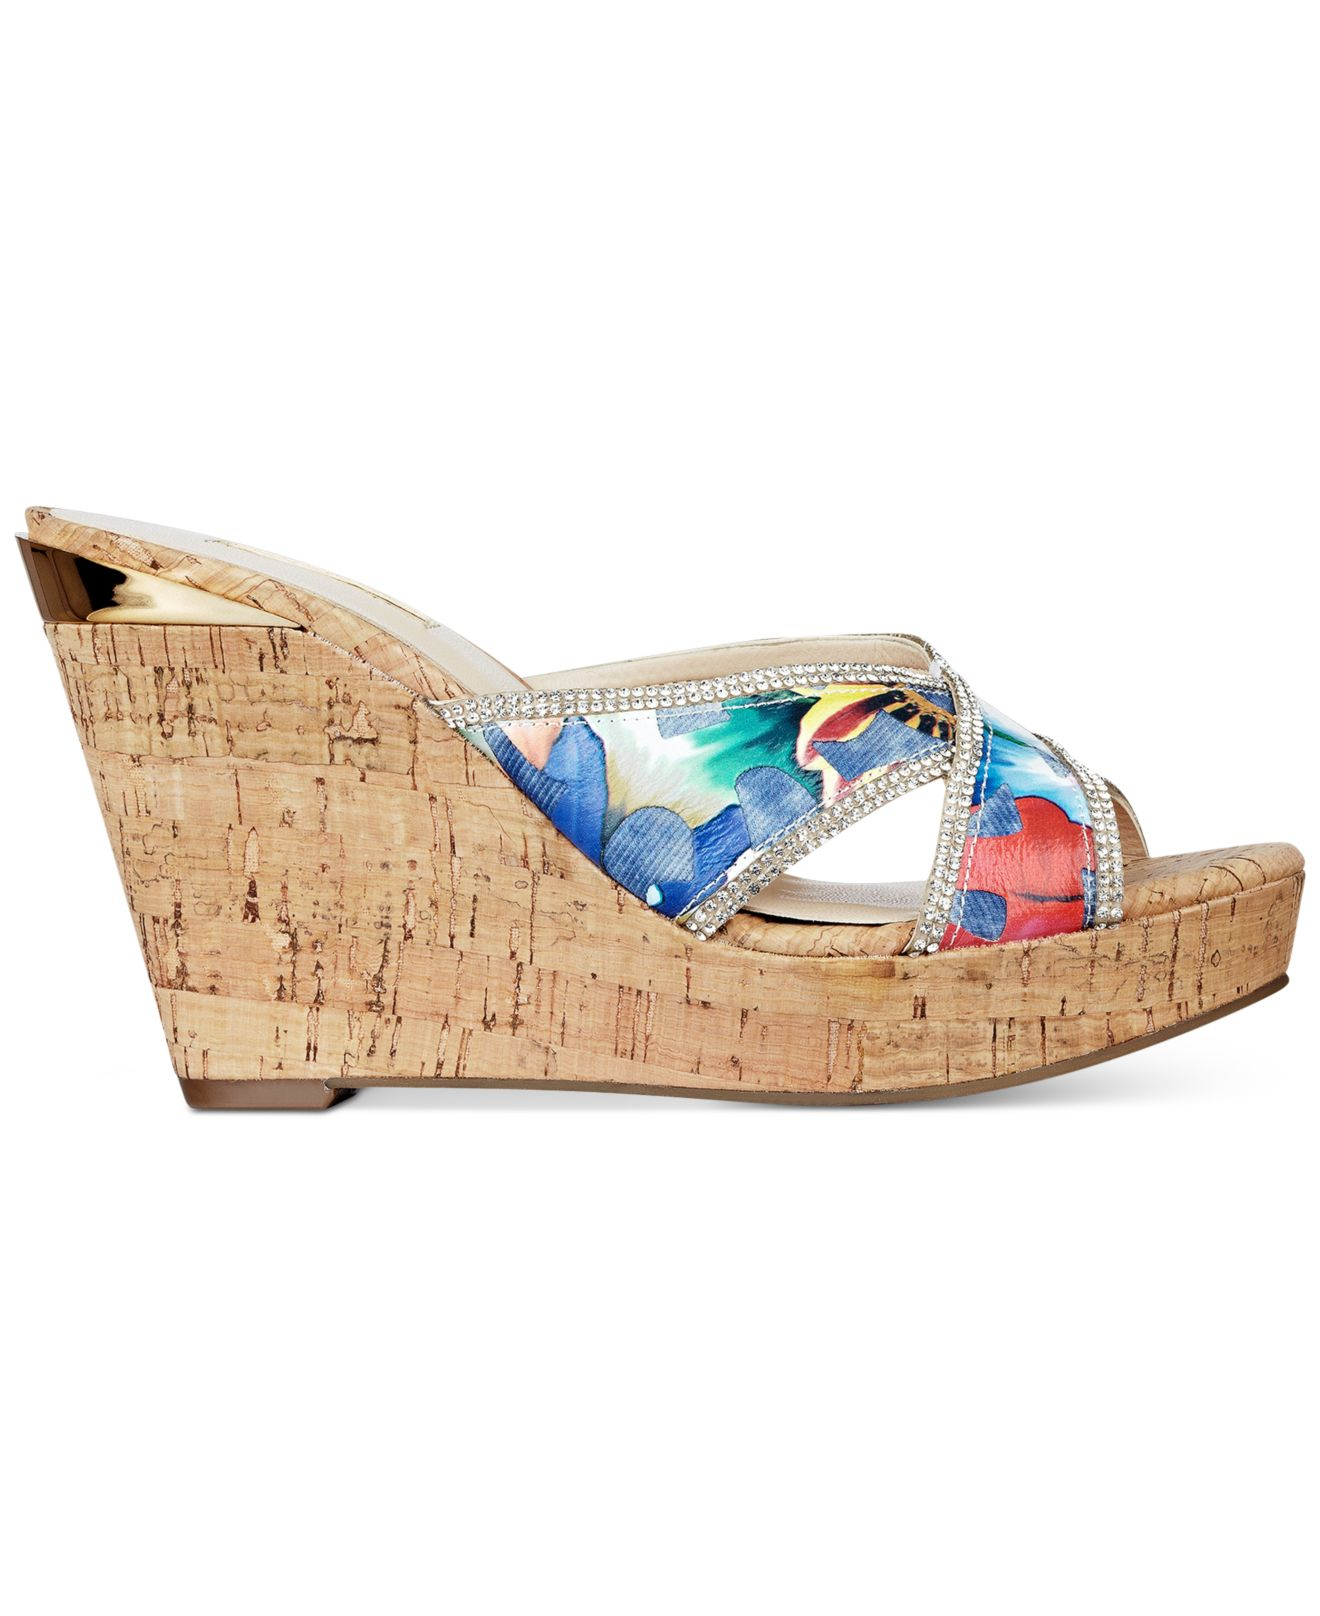 b15d8c9c0d8 Lyst - Guess Women s Eleonora X Wedge Sandals